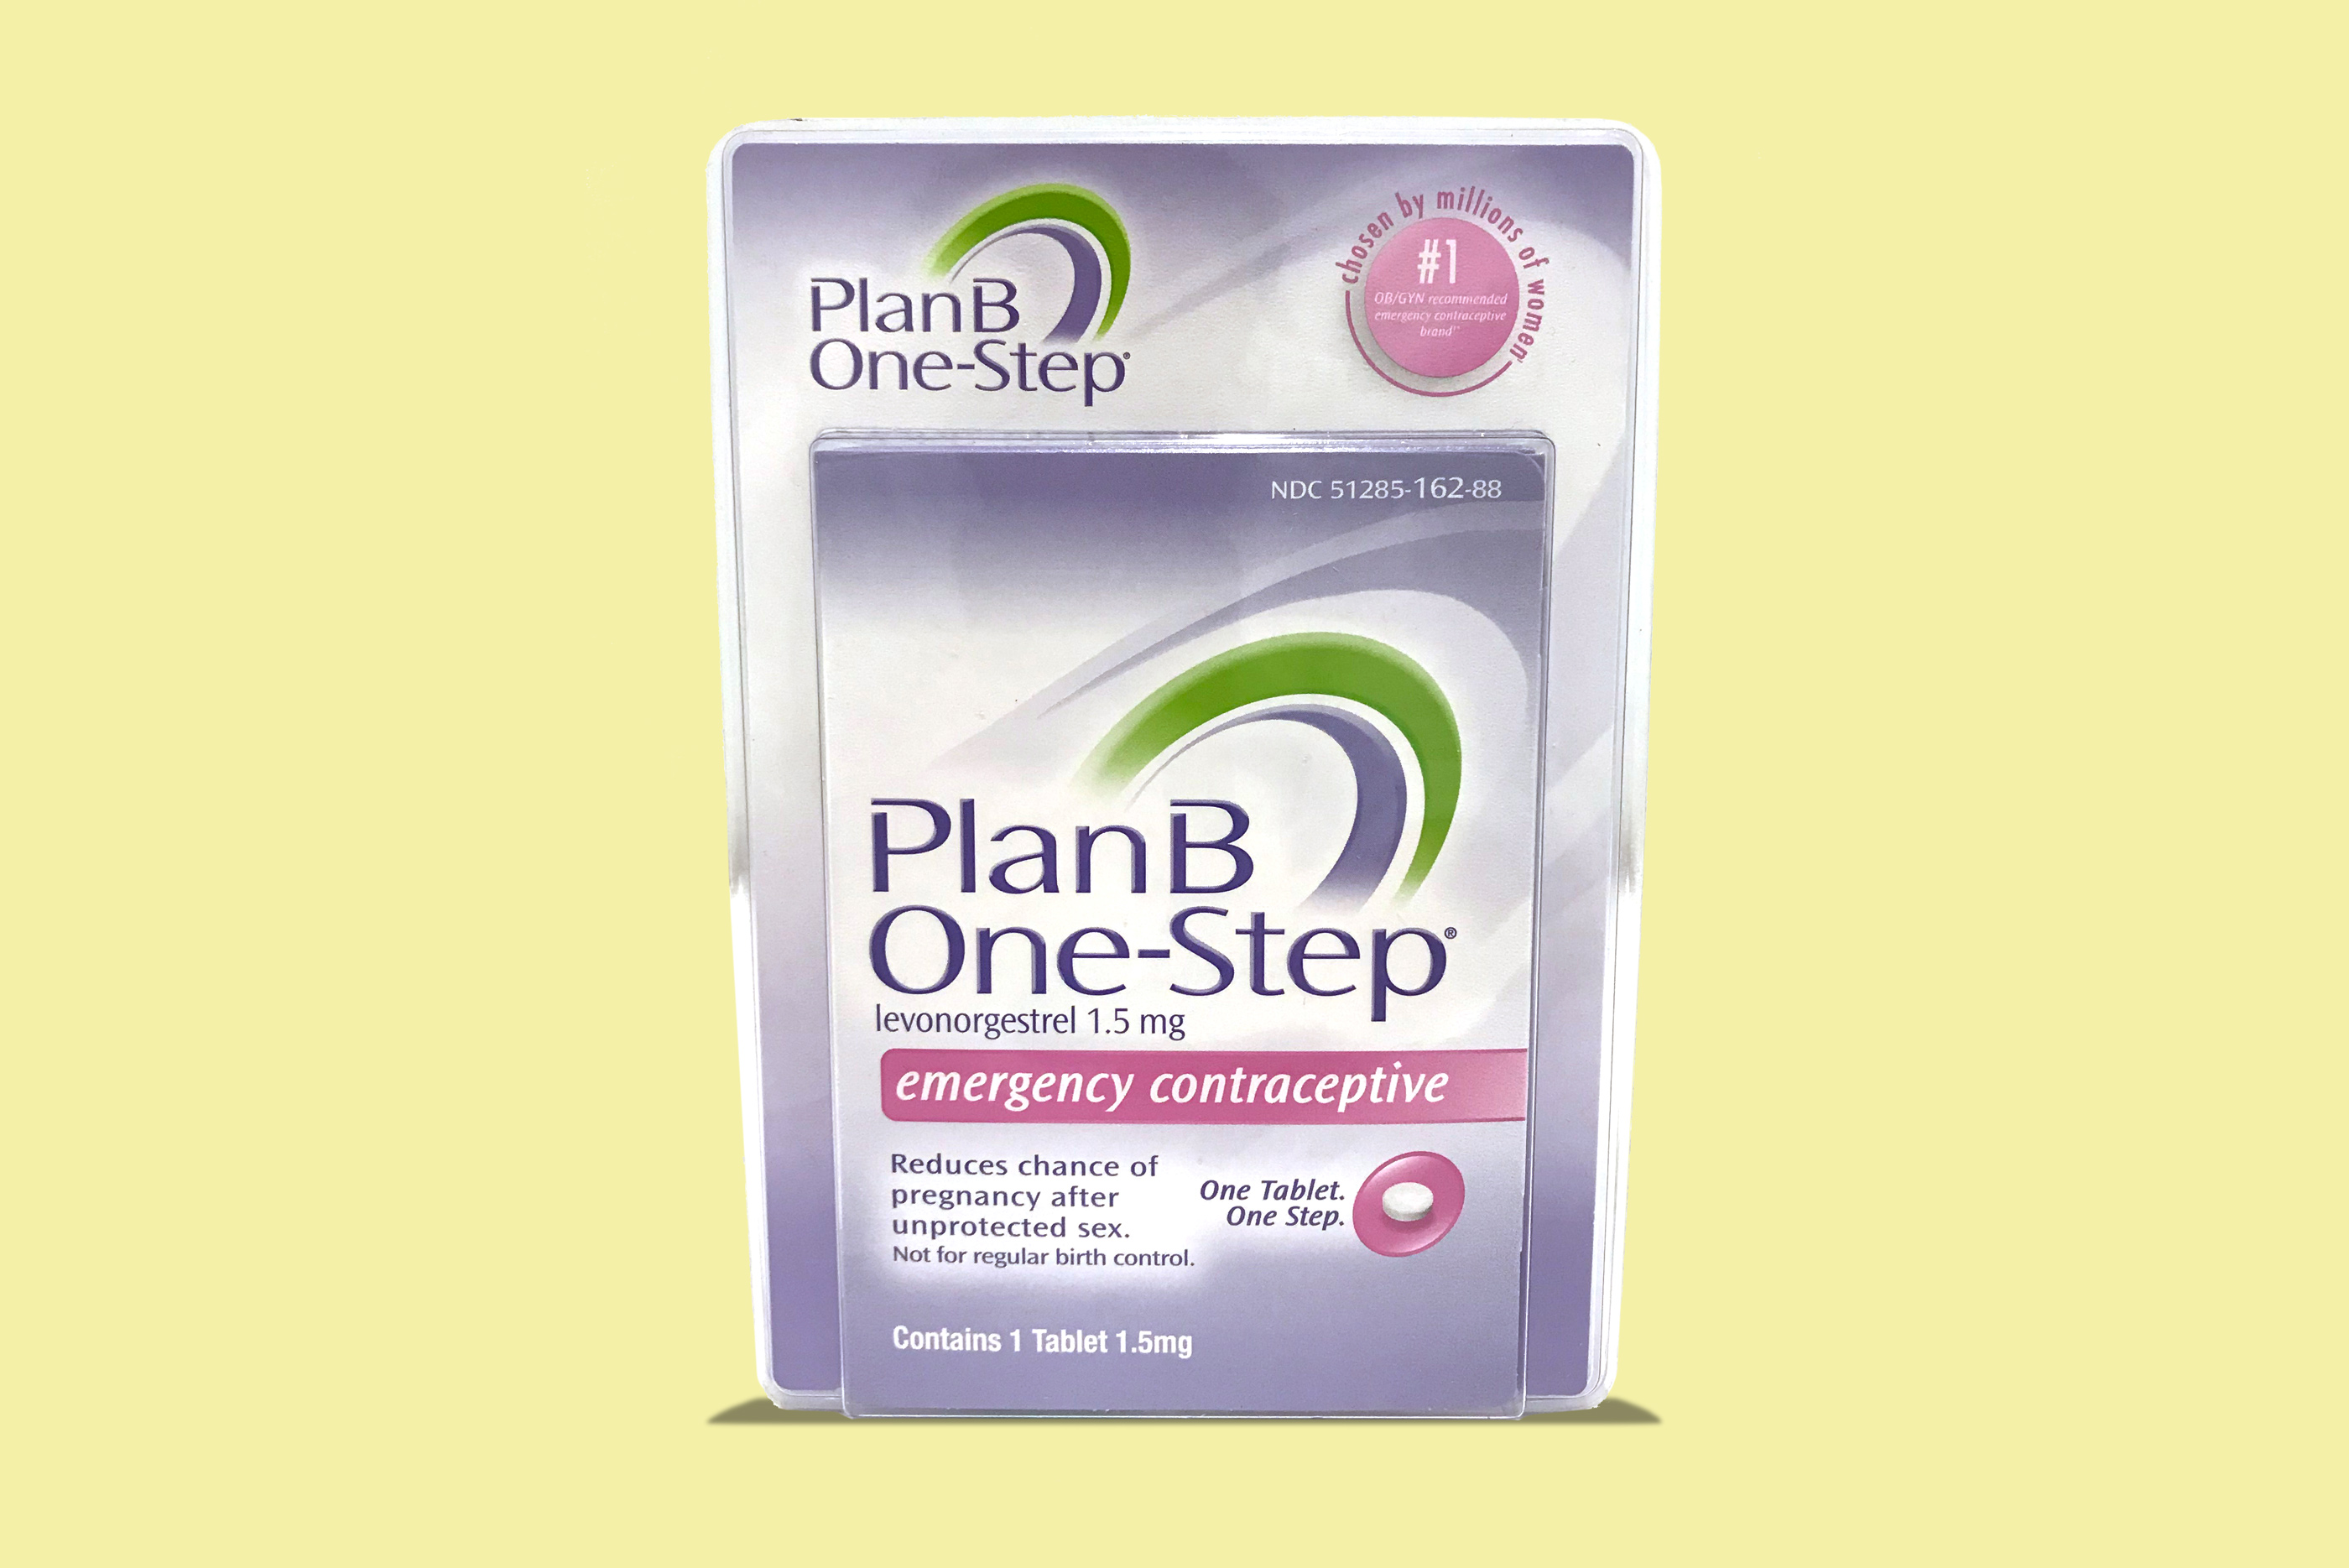 Here's How the Plan B Pill Actually Works